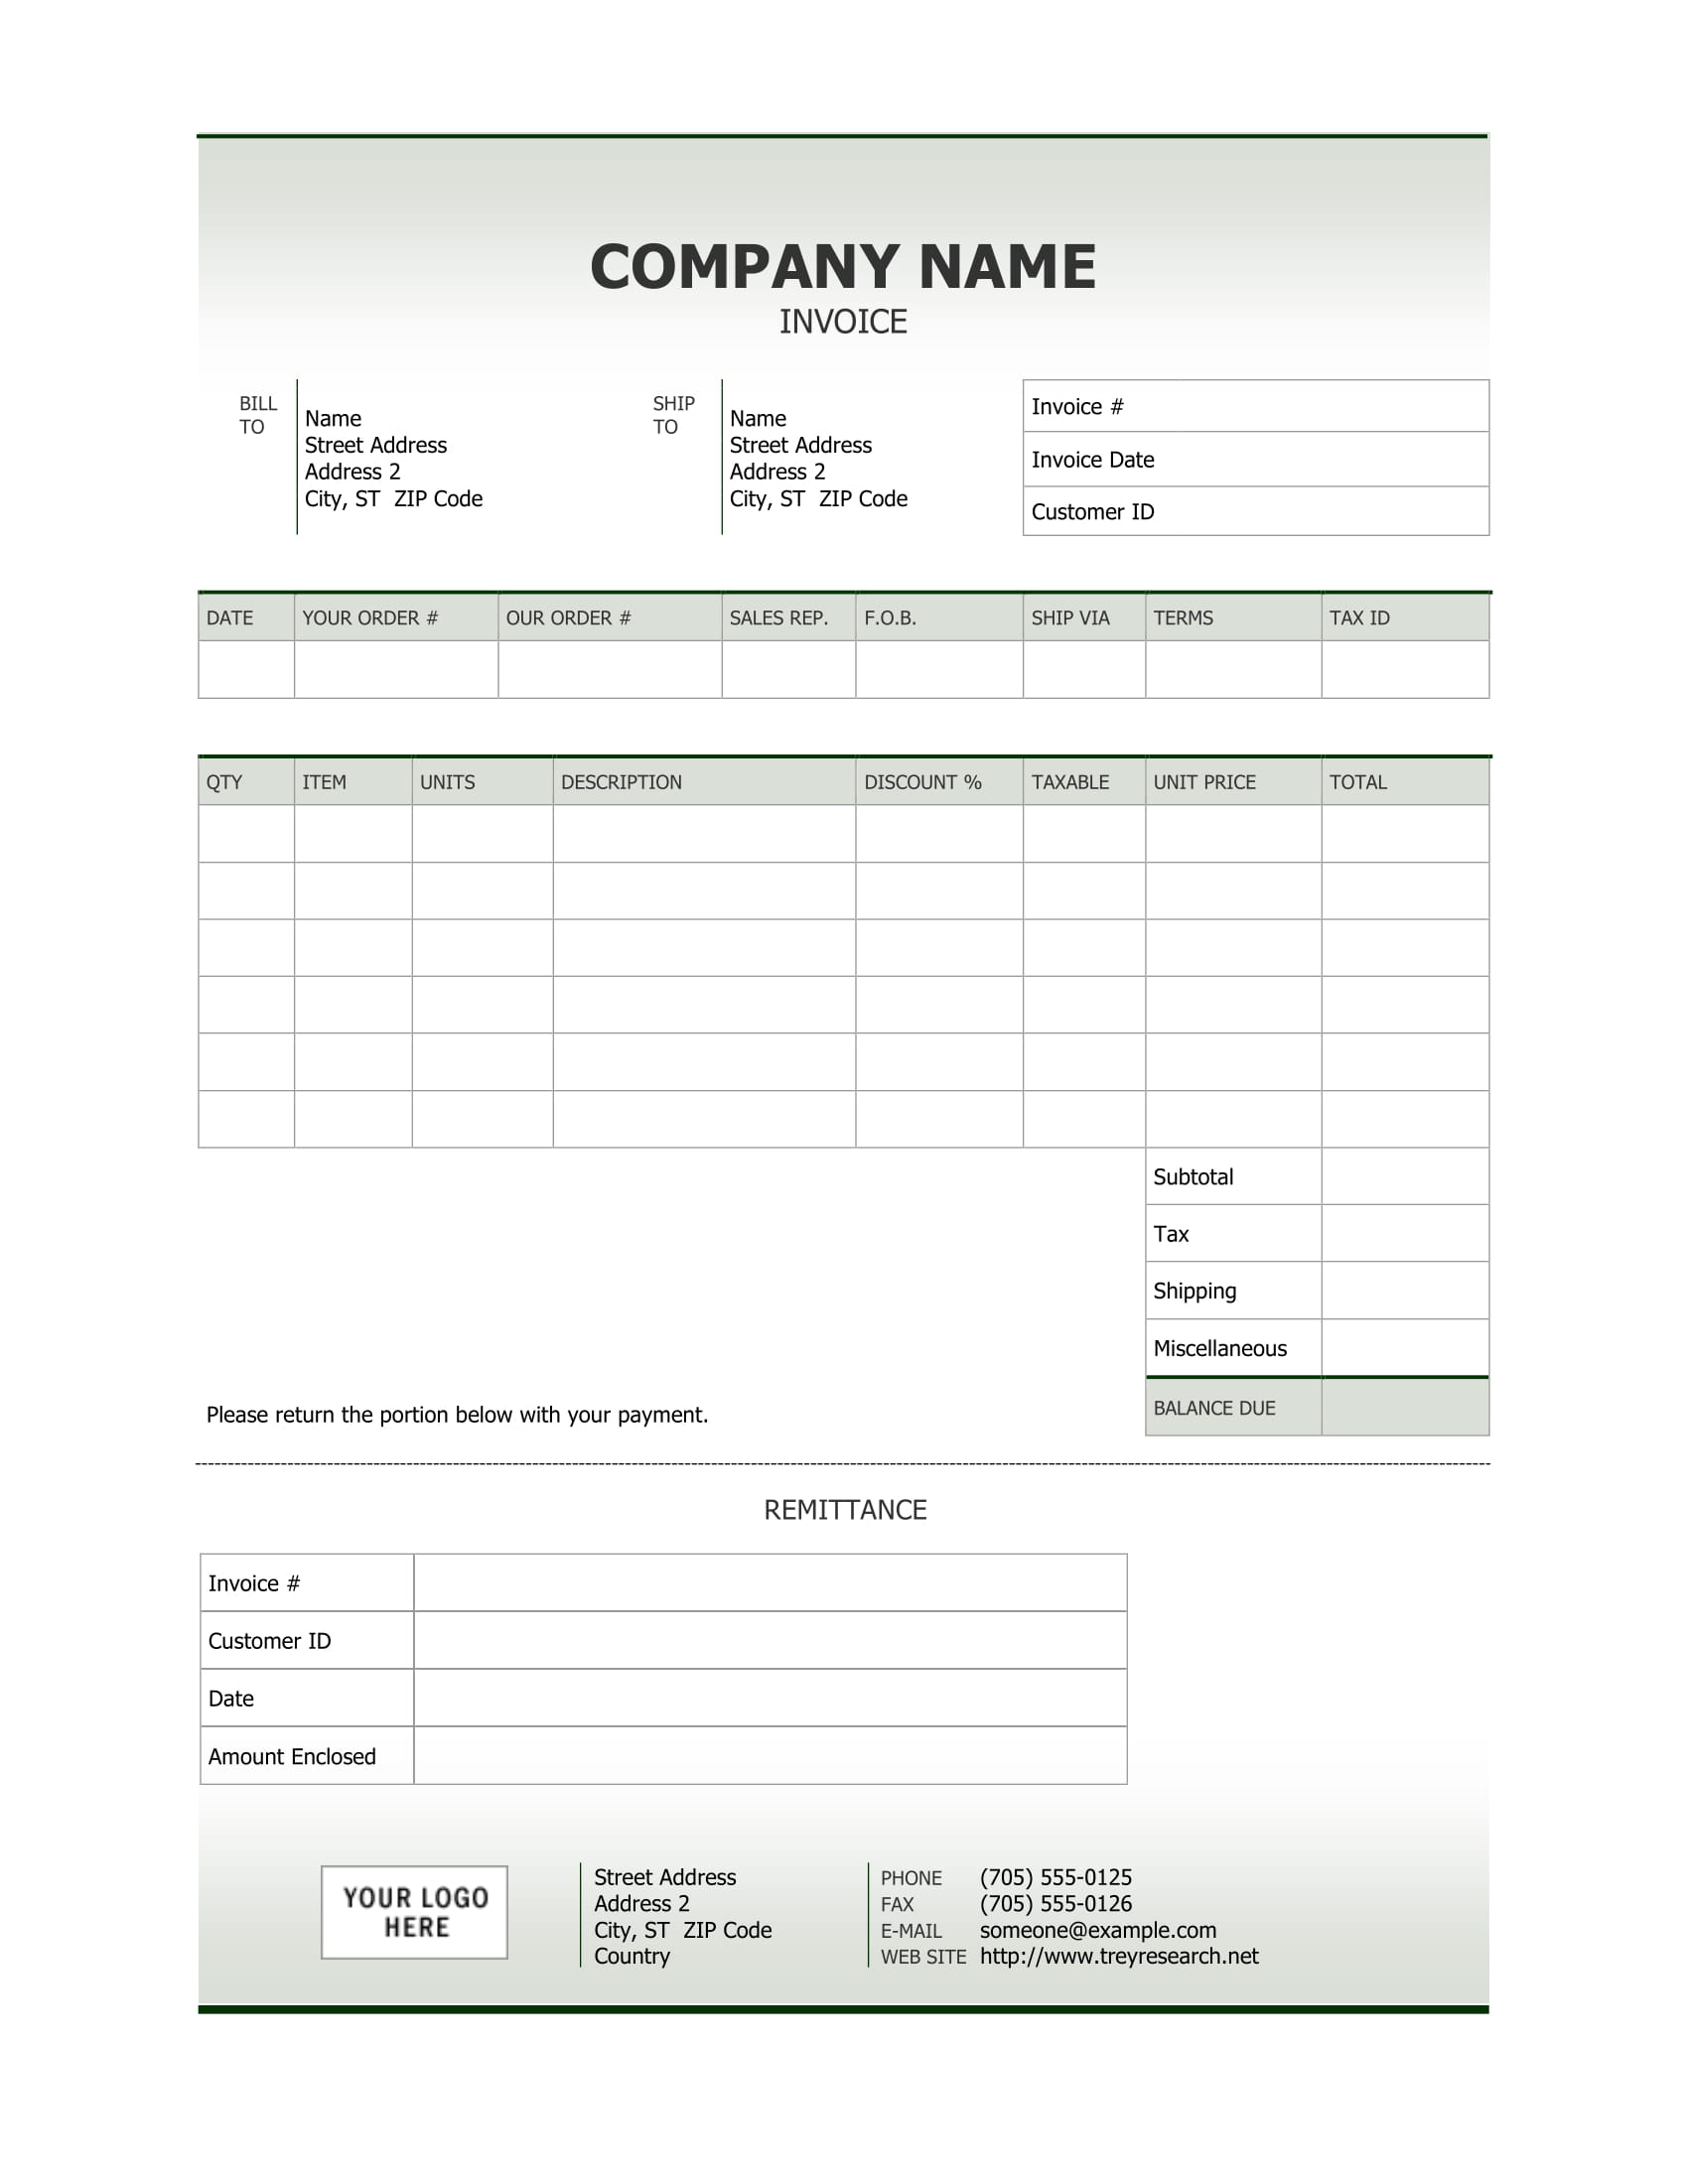 How To Create An Invoice In Word A Step By Step Guide